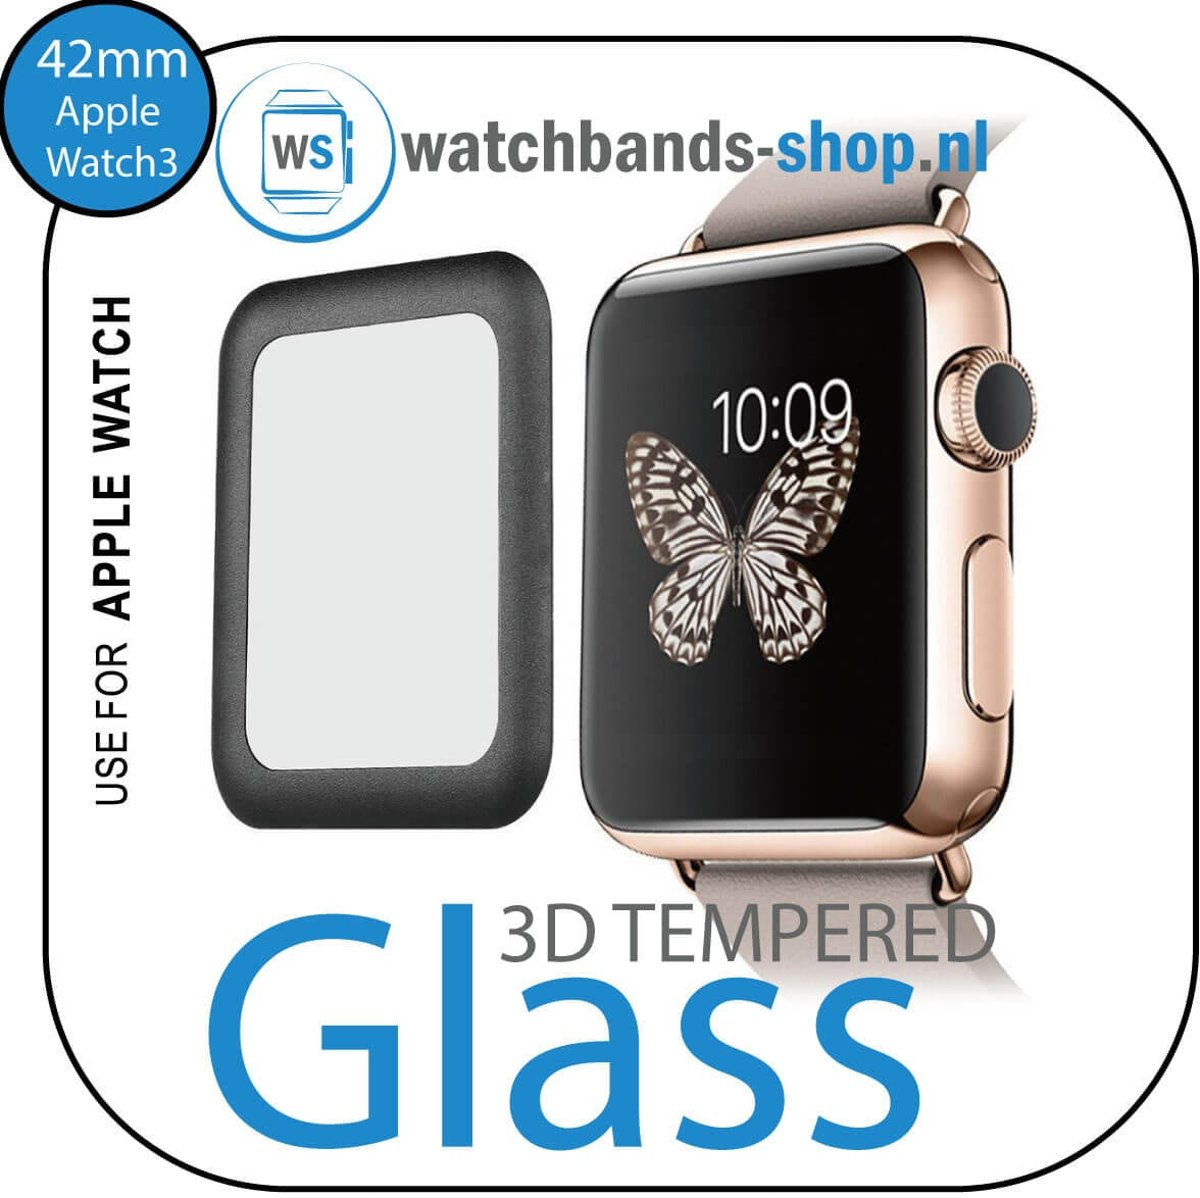 42mm full Cover 3D Tempered Glass Screen Protector For Apple watch / iWatch 3 black edge | Watchbands-shop.nl kopen